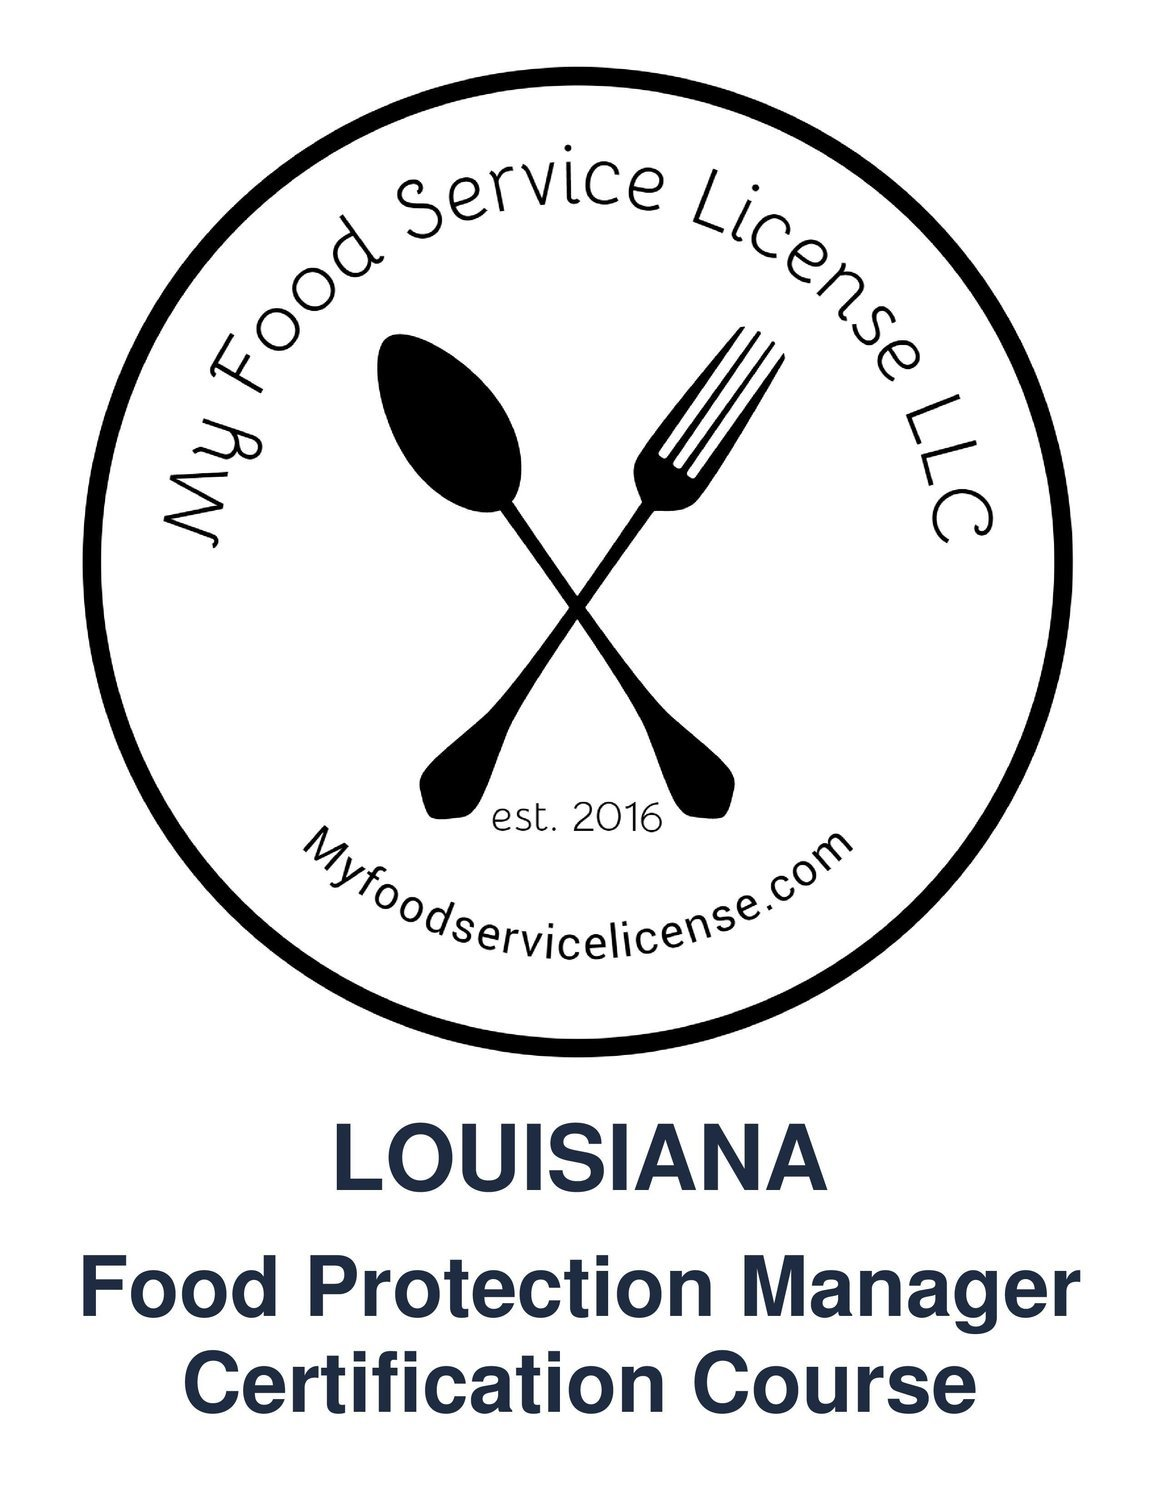 Louisiana Online Food Protection Manager Certification Course